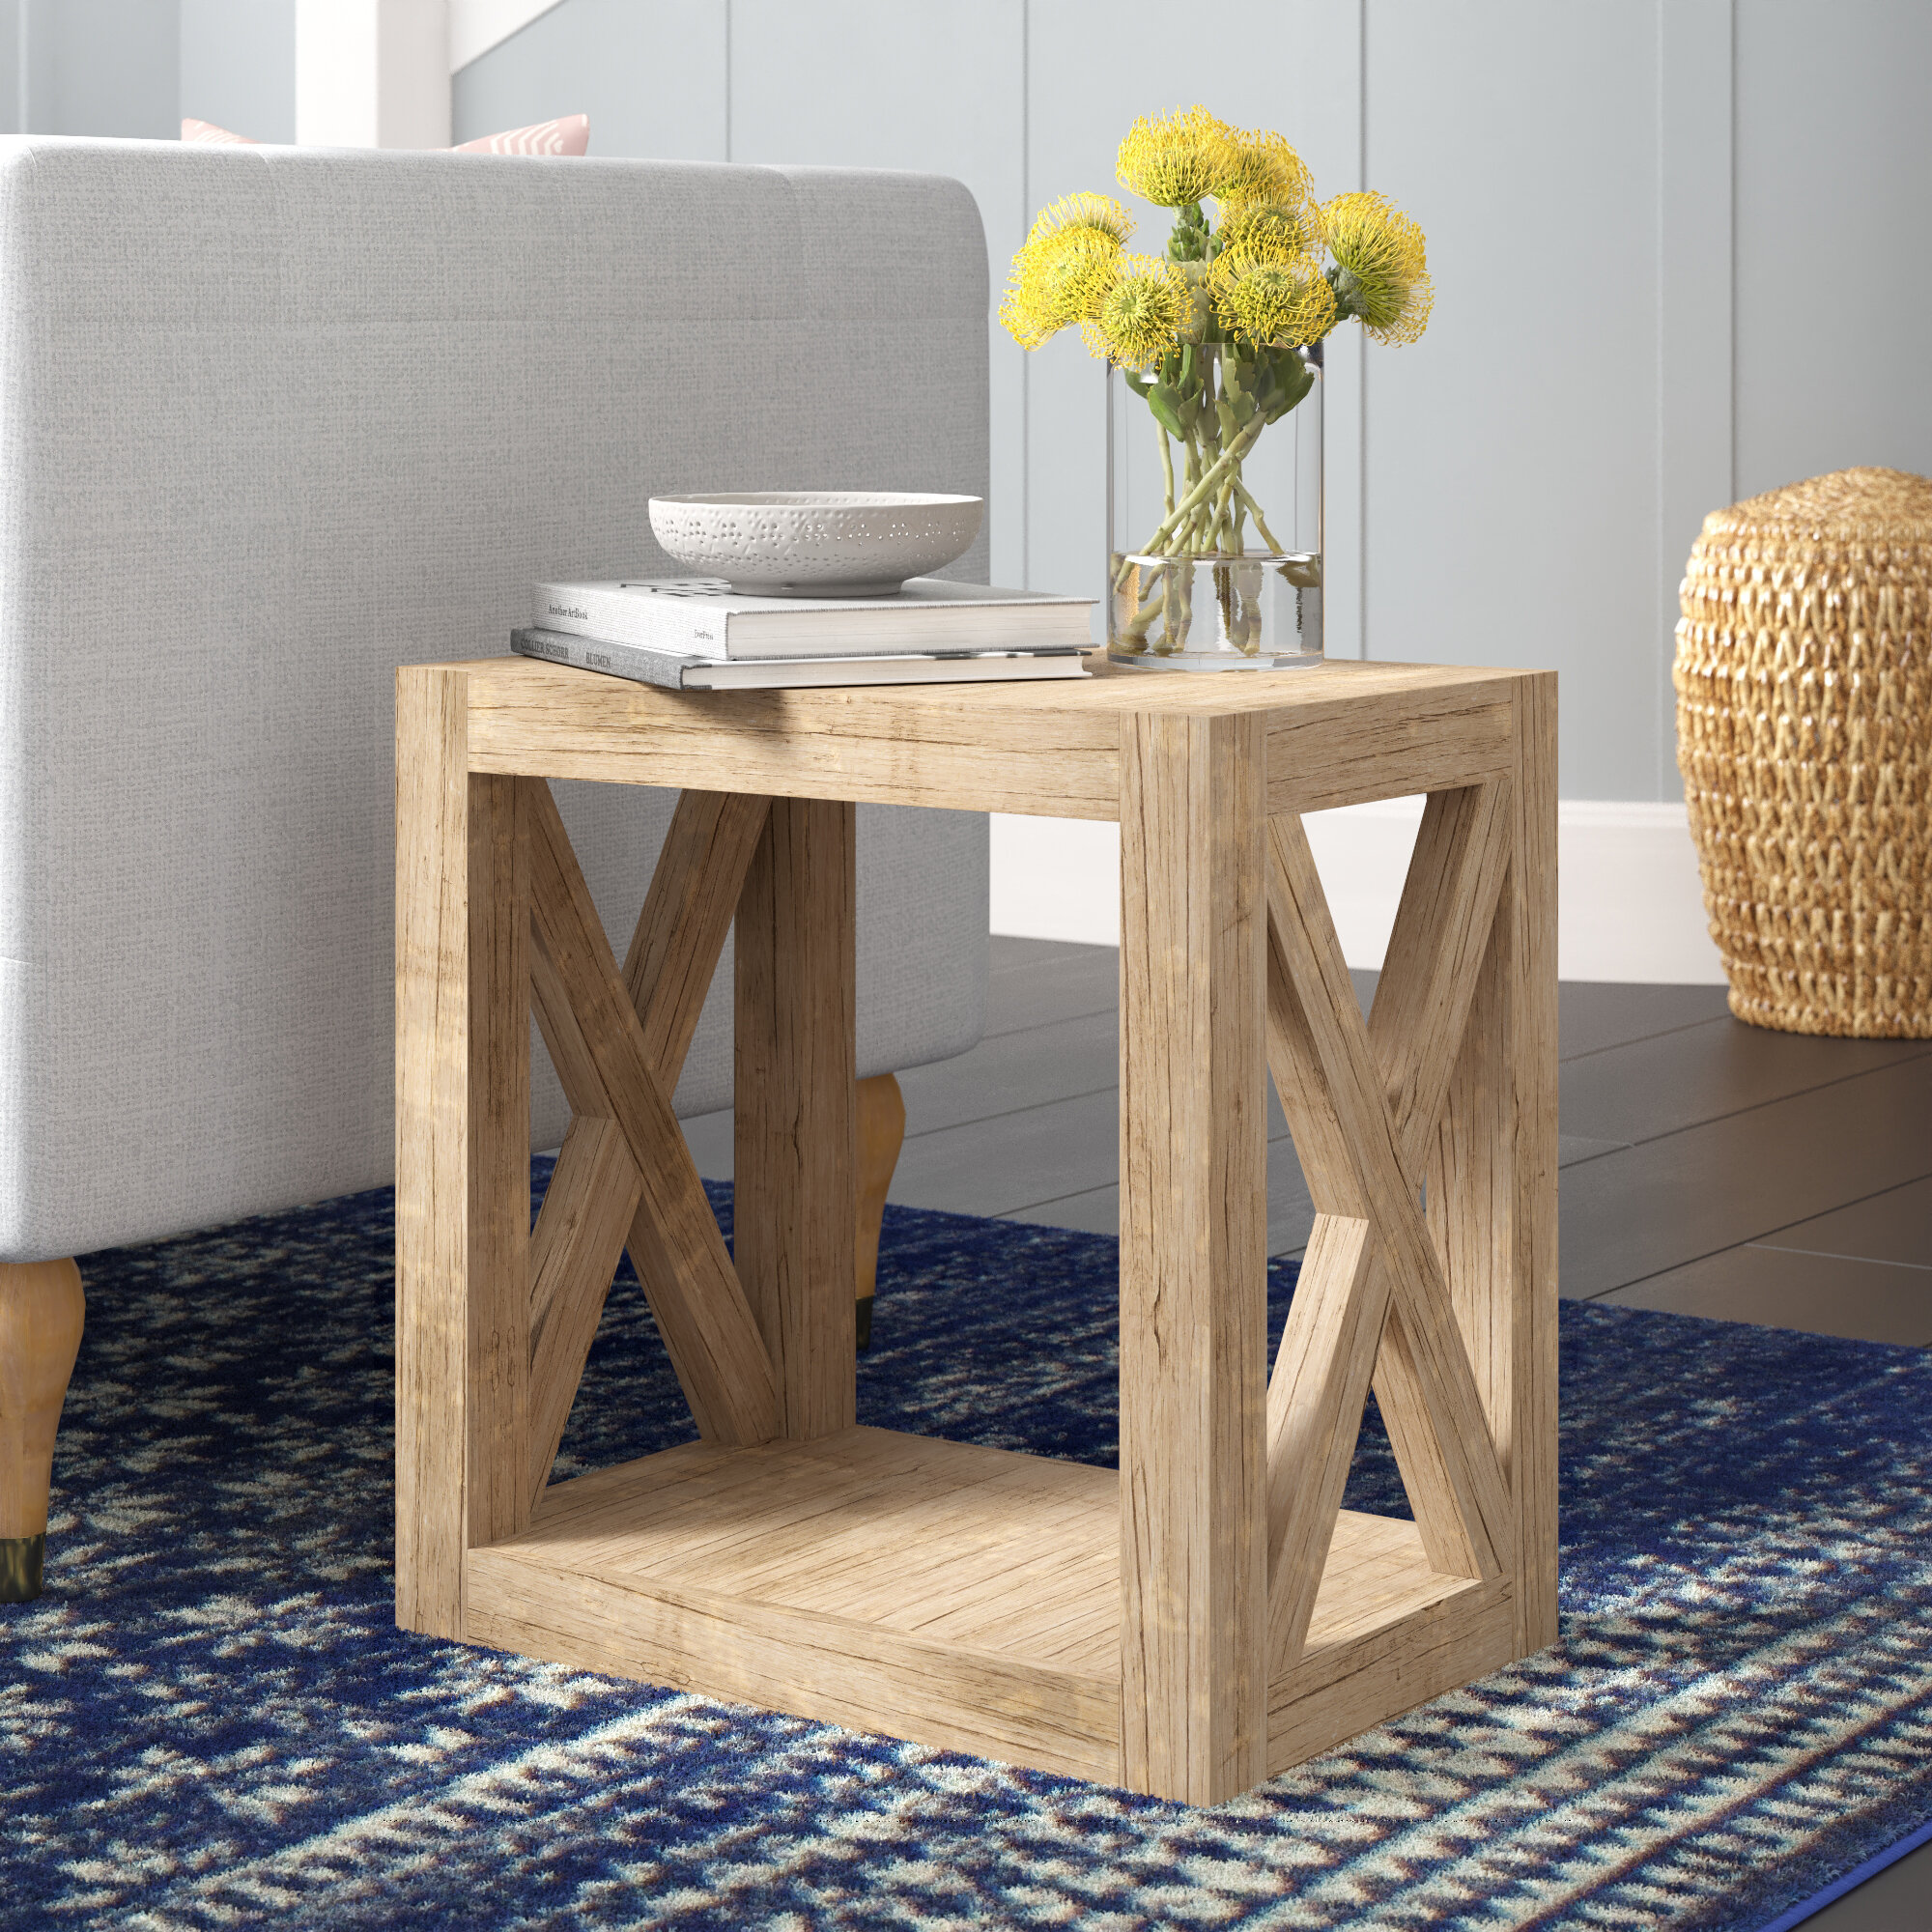 Joss Main Wrightstown Solid Wood Floor Shelf End Table Reviews Wayfair